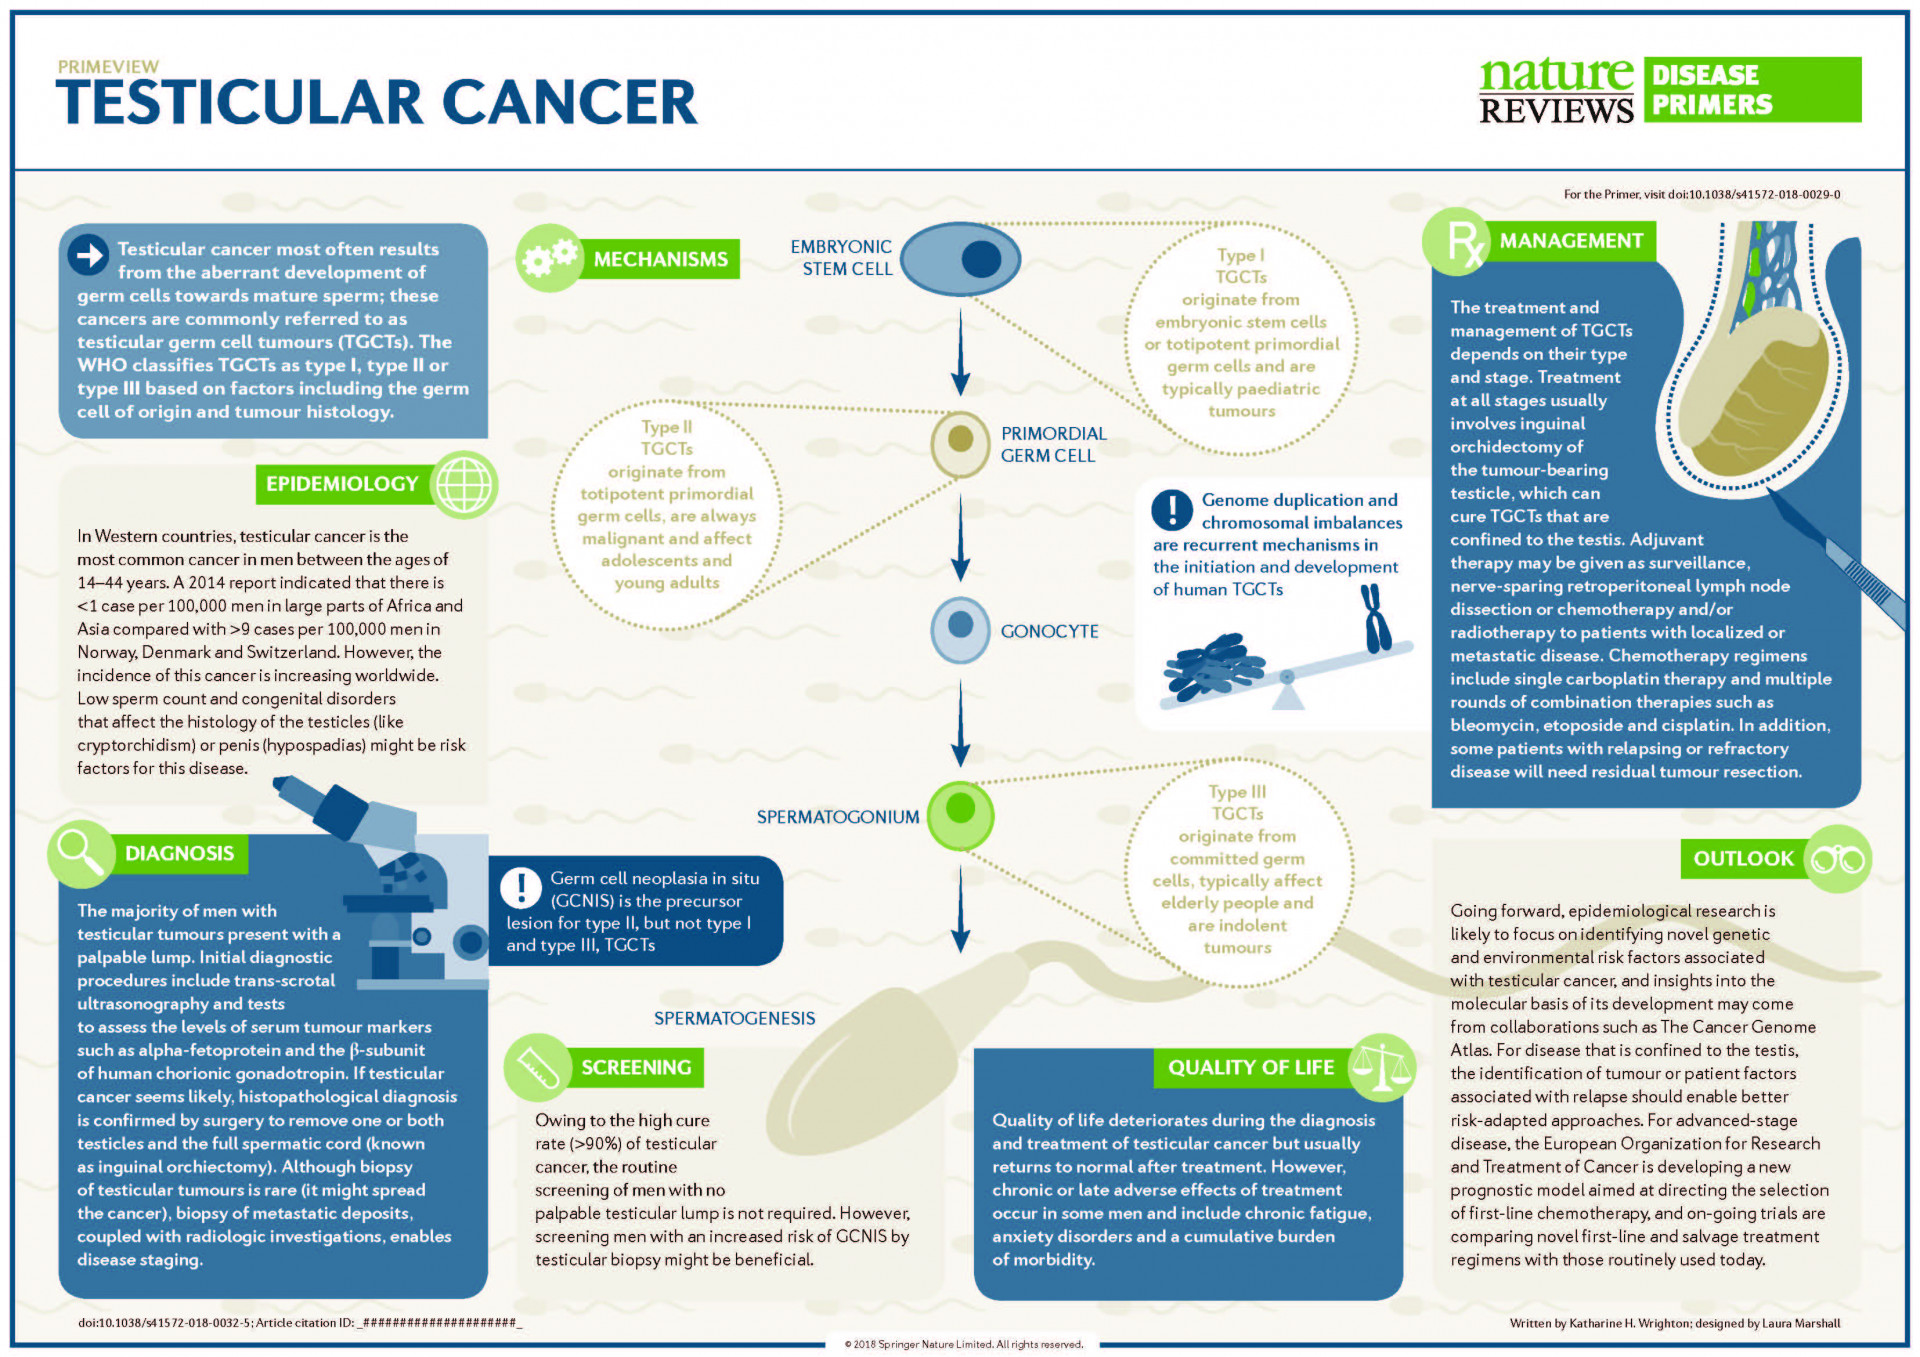 Poster Testicular Cancer (related to paper Cheng et al. Nat Rev Dis Primers 2018).